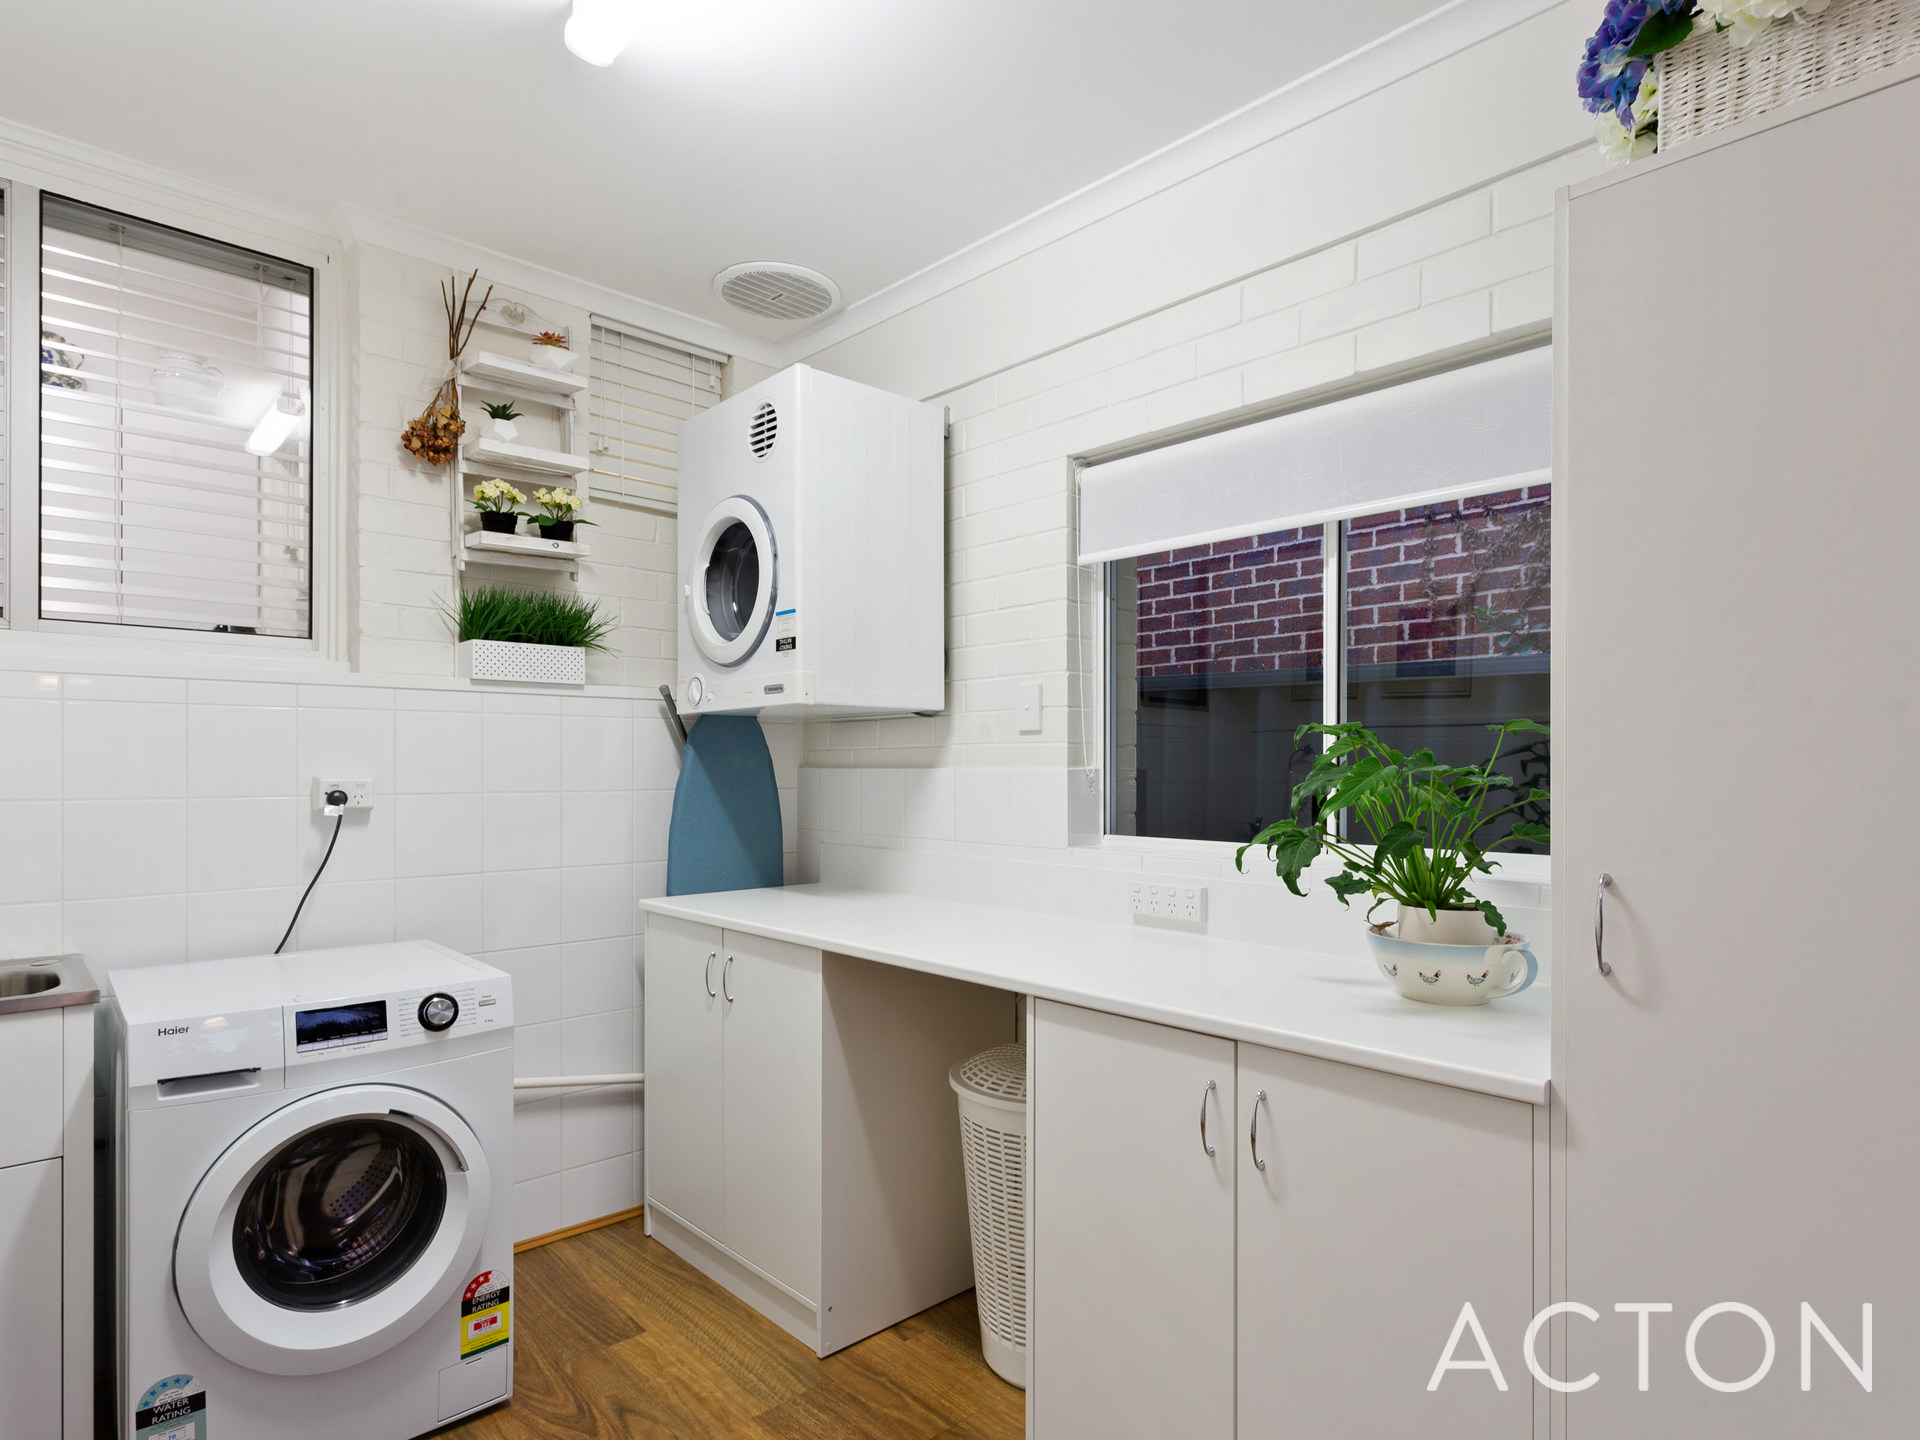 35 Doney Street Alfred Cove - House For Sale - 20624093 - ACTON Applecross